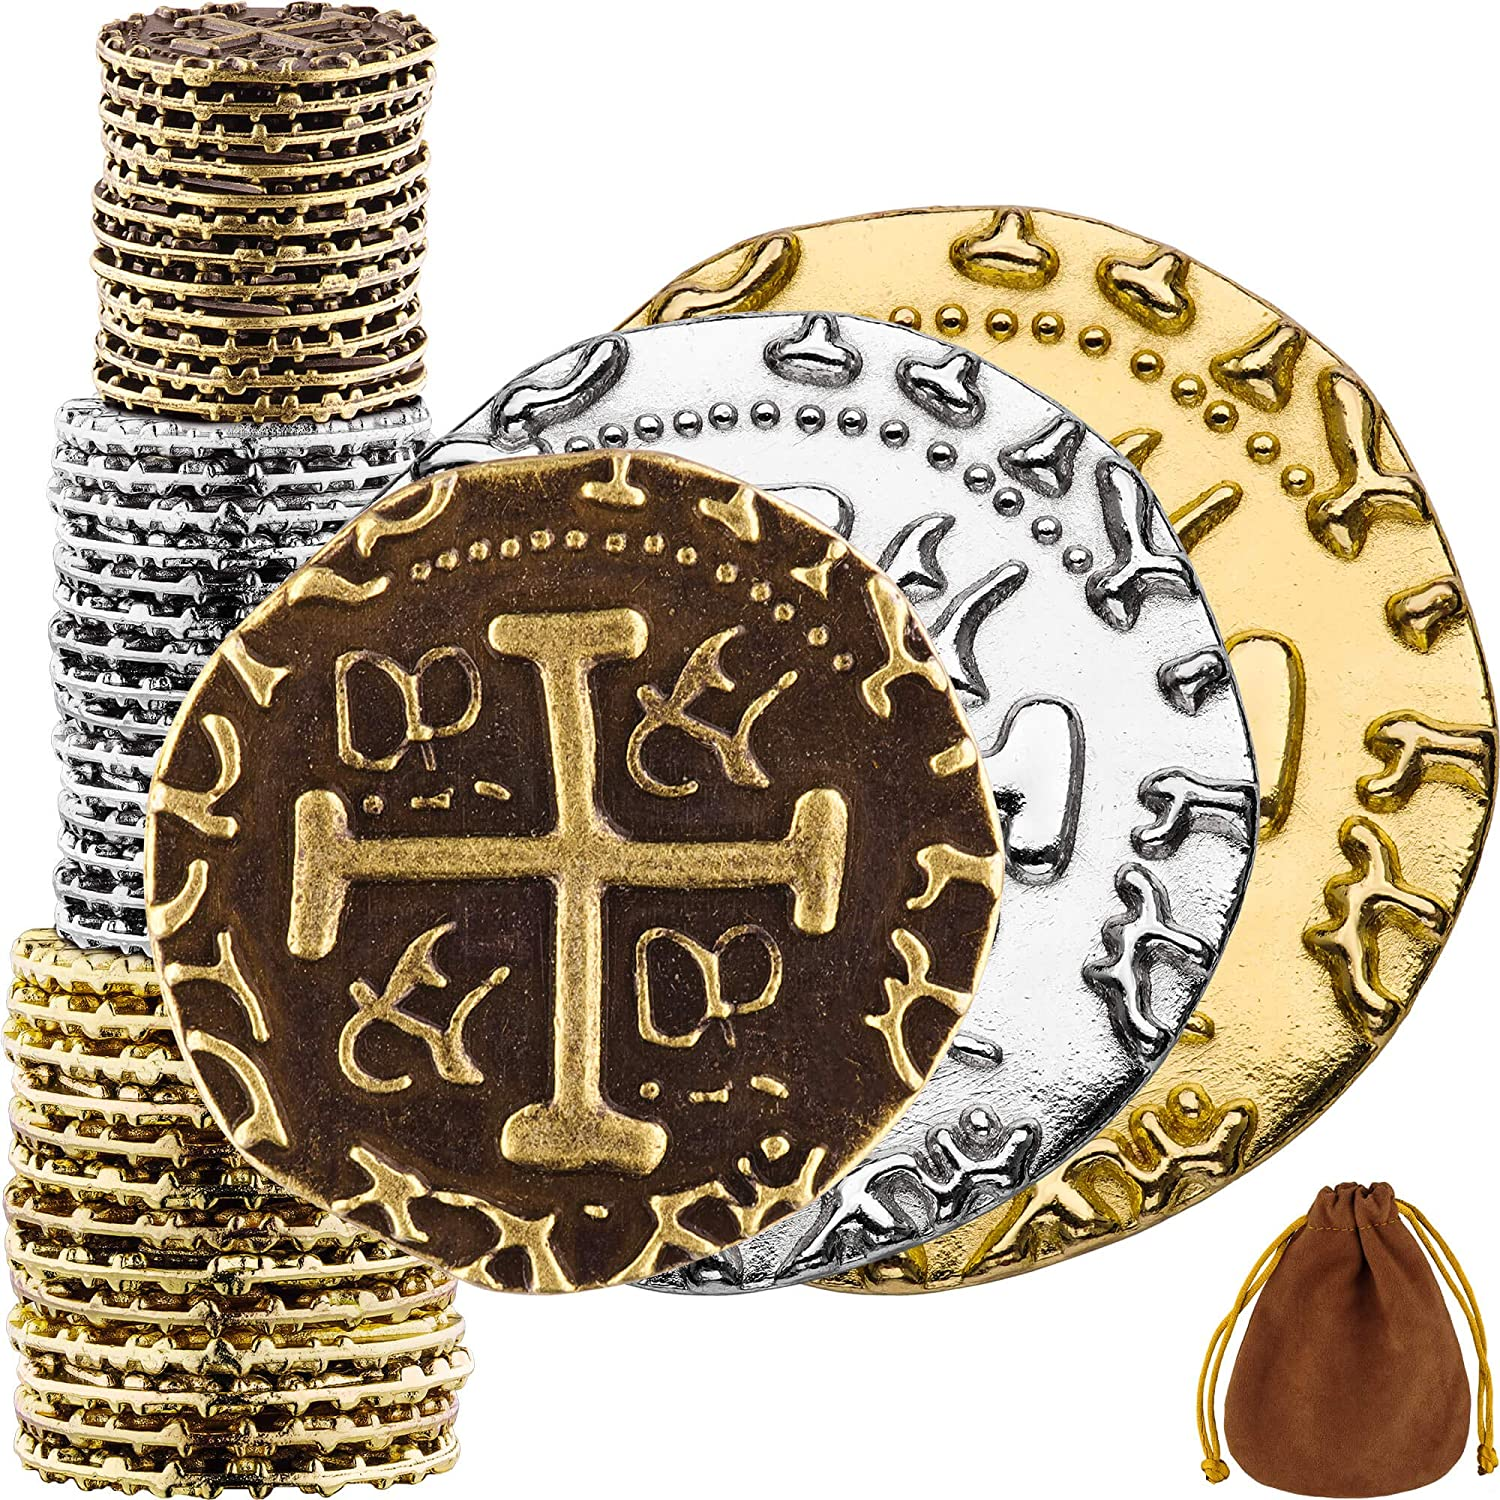 Pirate Coins - 36 Bronze, Silver & Gold Treasure Coin Set, Metal Replica Spanish Doubloons for Board Games, Tokens, Cosplay - Realistic Money Imitation, Pirate Treasure Chest - M, L. XL Sizes Mix